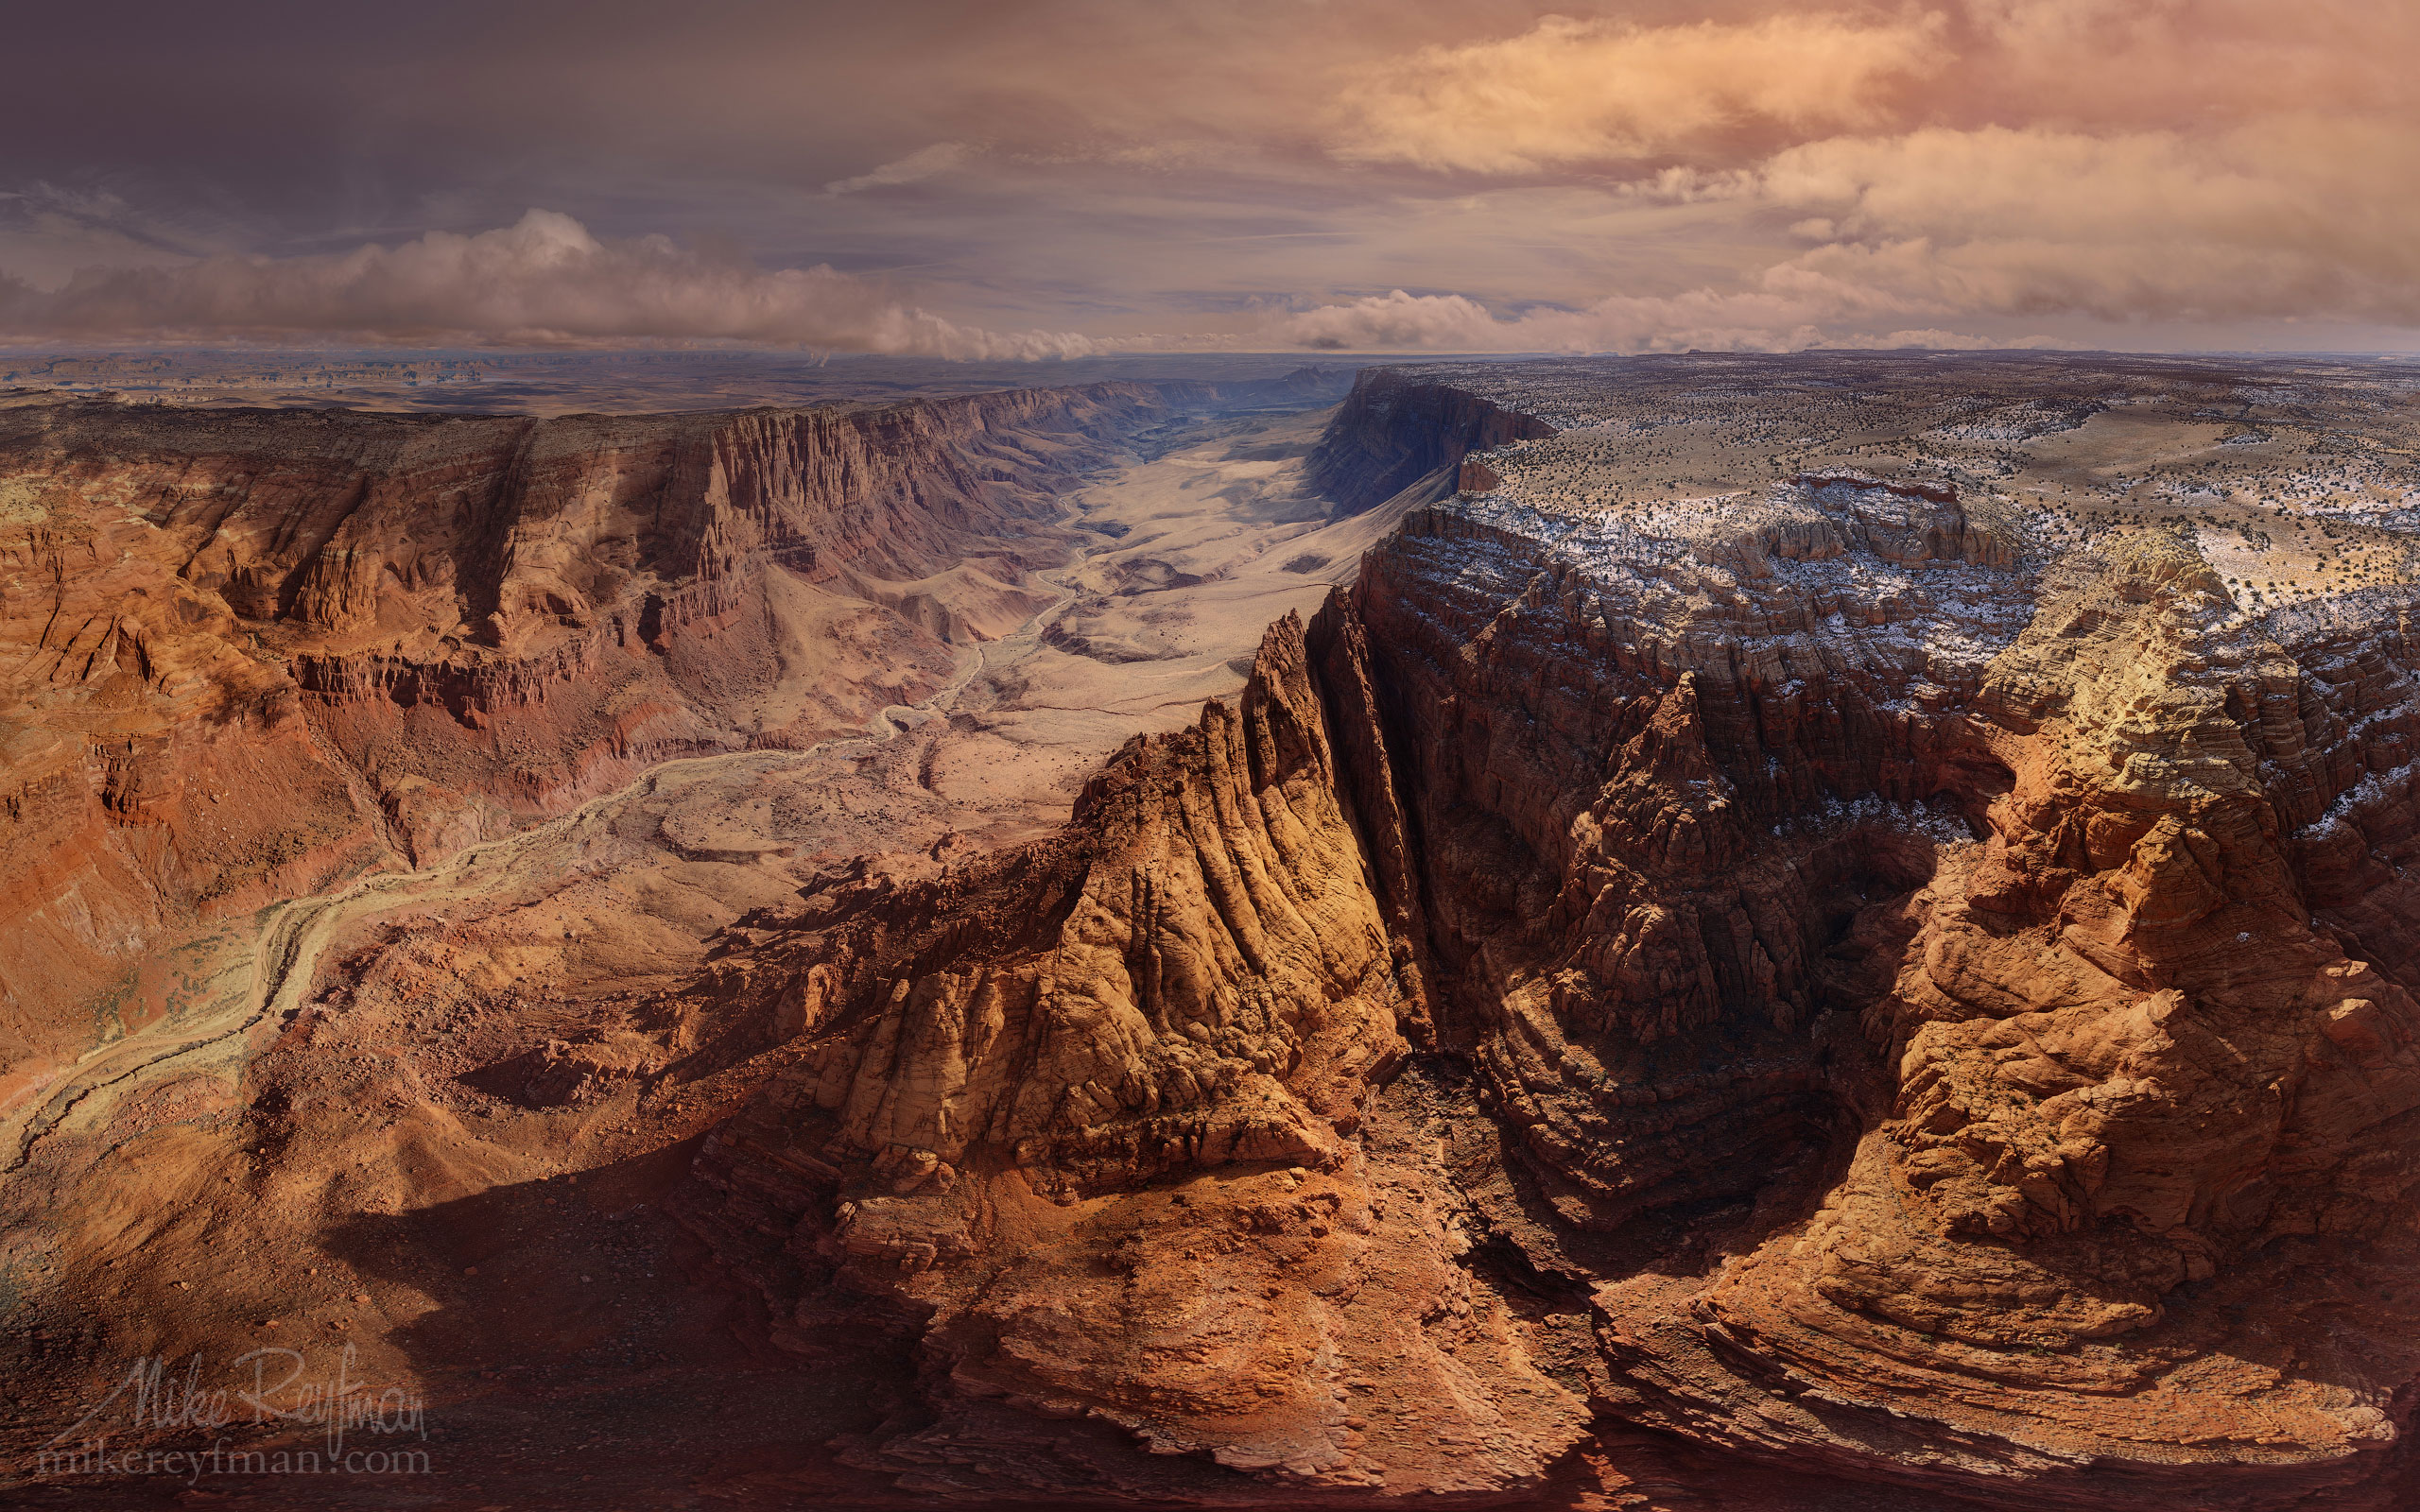 Paria Canyon. Paria Canyon-Vermilion Cliffs Wilderness Area. Utah/Arizona, USA. Aerial 048-LP3_AIR0566-69.jpg - Lake Powell, Glen Canyon NAR. Colorado and Sun Juan Rivers. Utah/Arizona, USA  - Mike Reyfman Photography